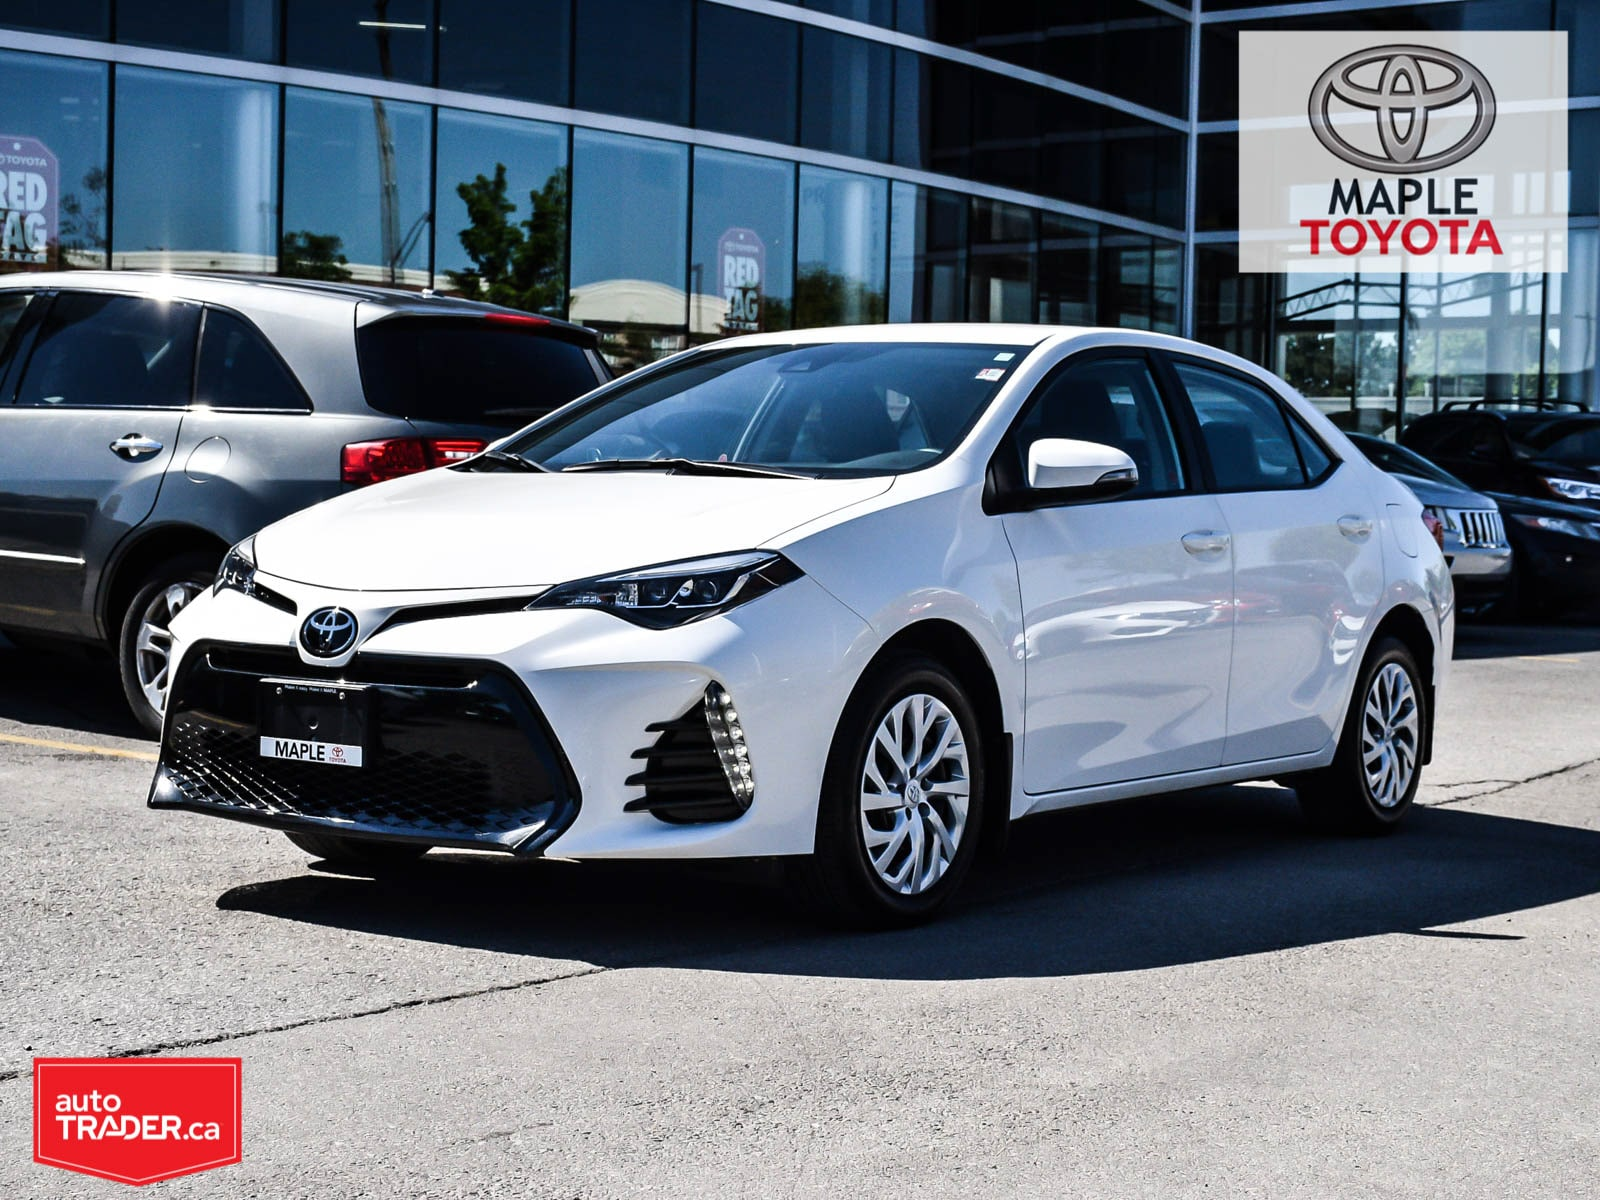 2017 Toyota Corolla SE - SOLD, PENDING DELIVERY Sedan